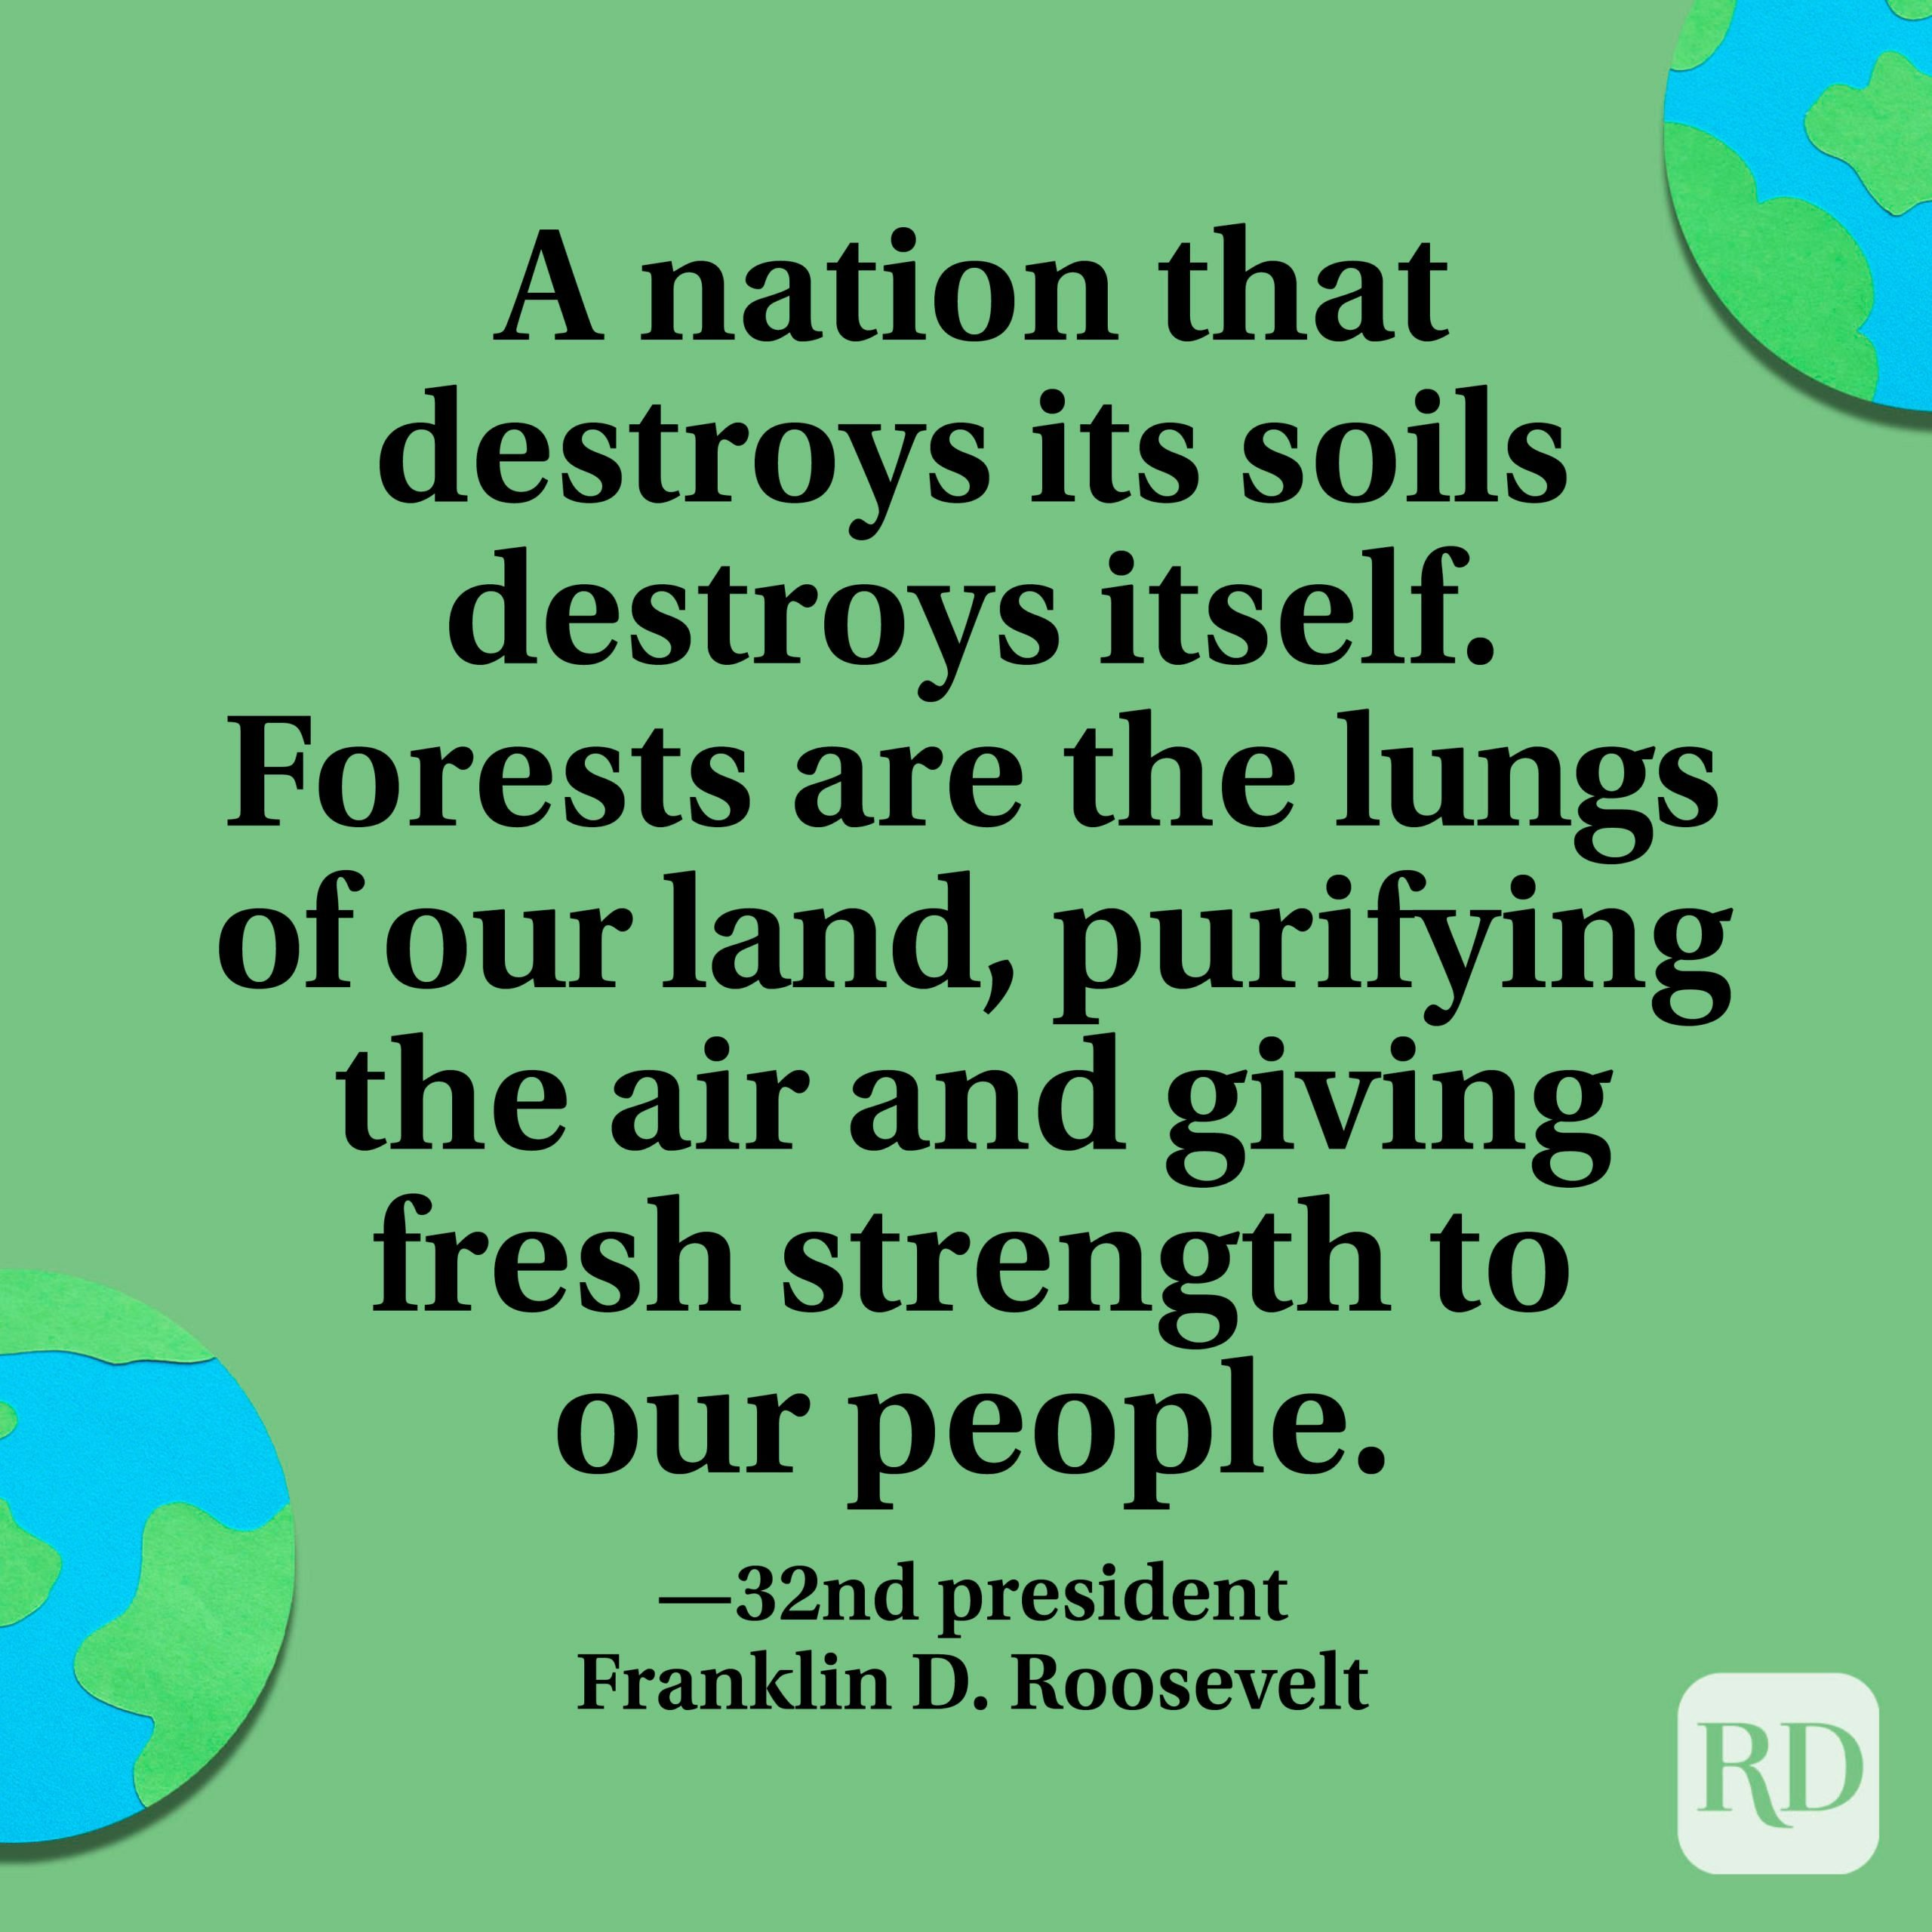 """""""A nation that destroys its soils destroys itself. Forests are the lungs of our land, purifying the air and giving fresh strength to our people."""" —32nd president Franklin D. Roosevelt."""